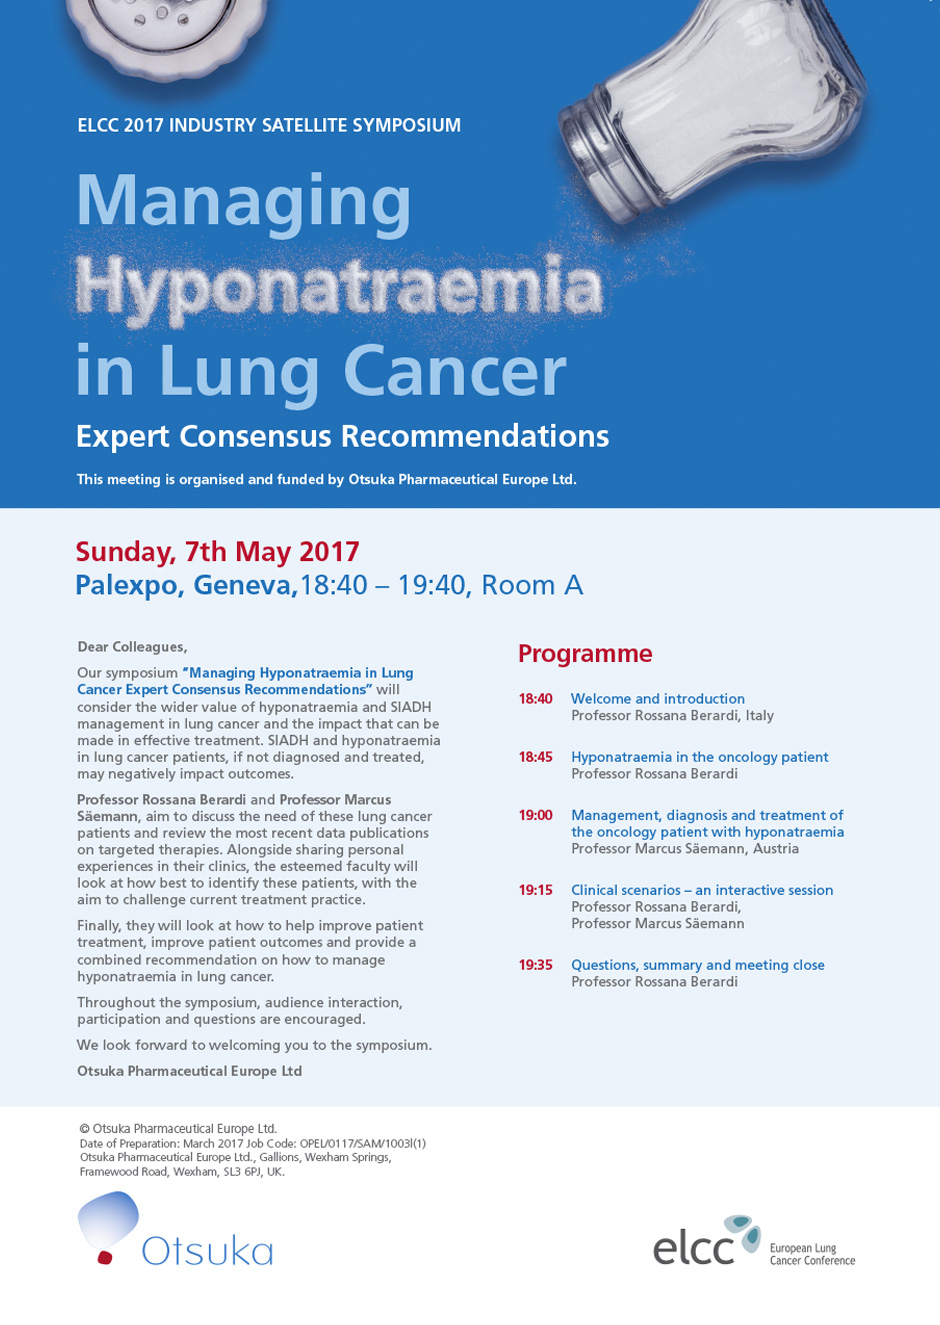 Managing Hyponatraemia in Lung Cancer